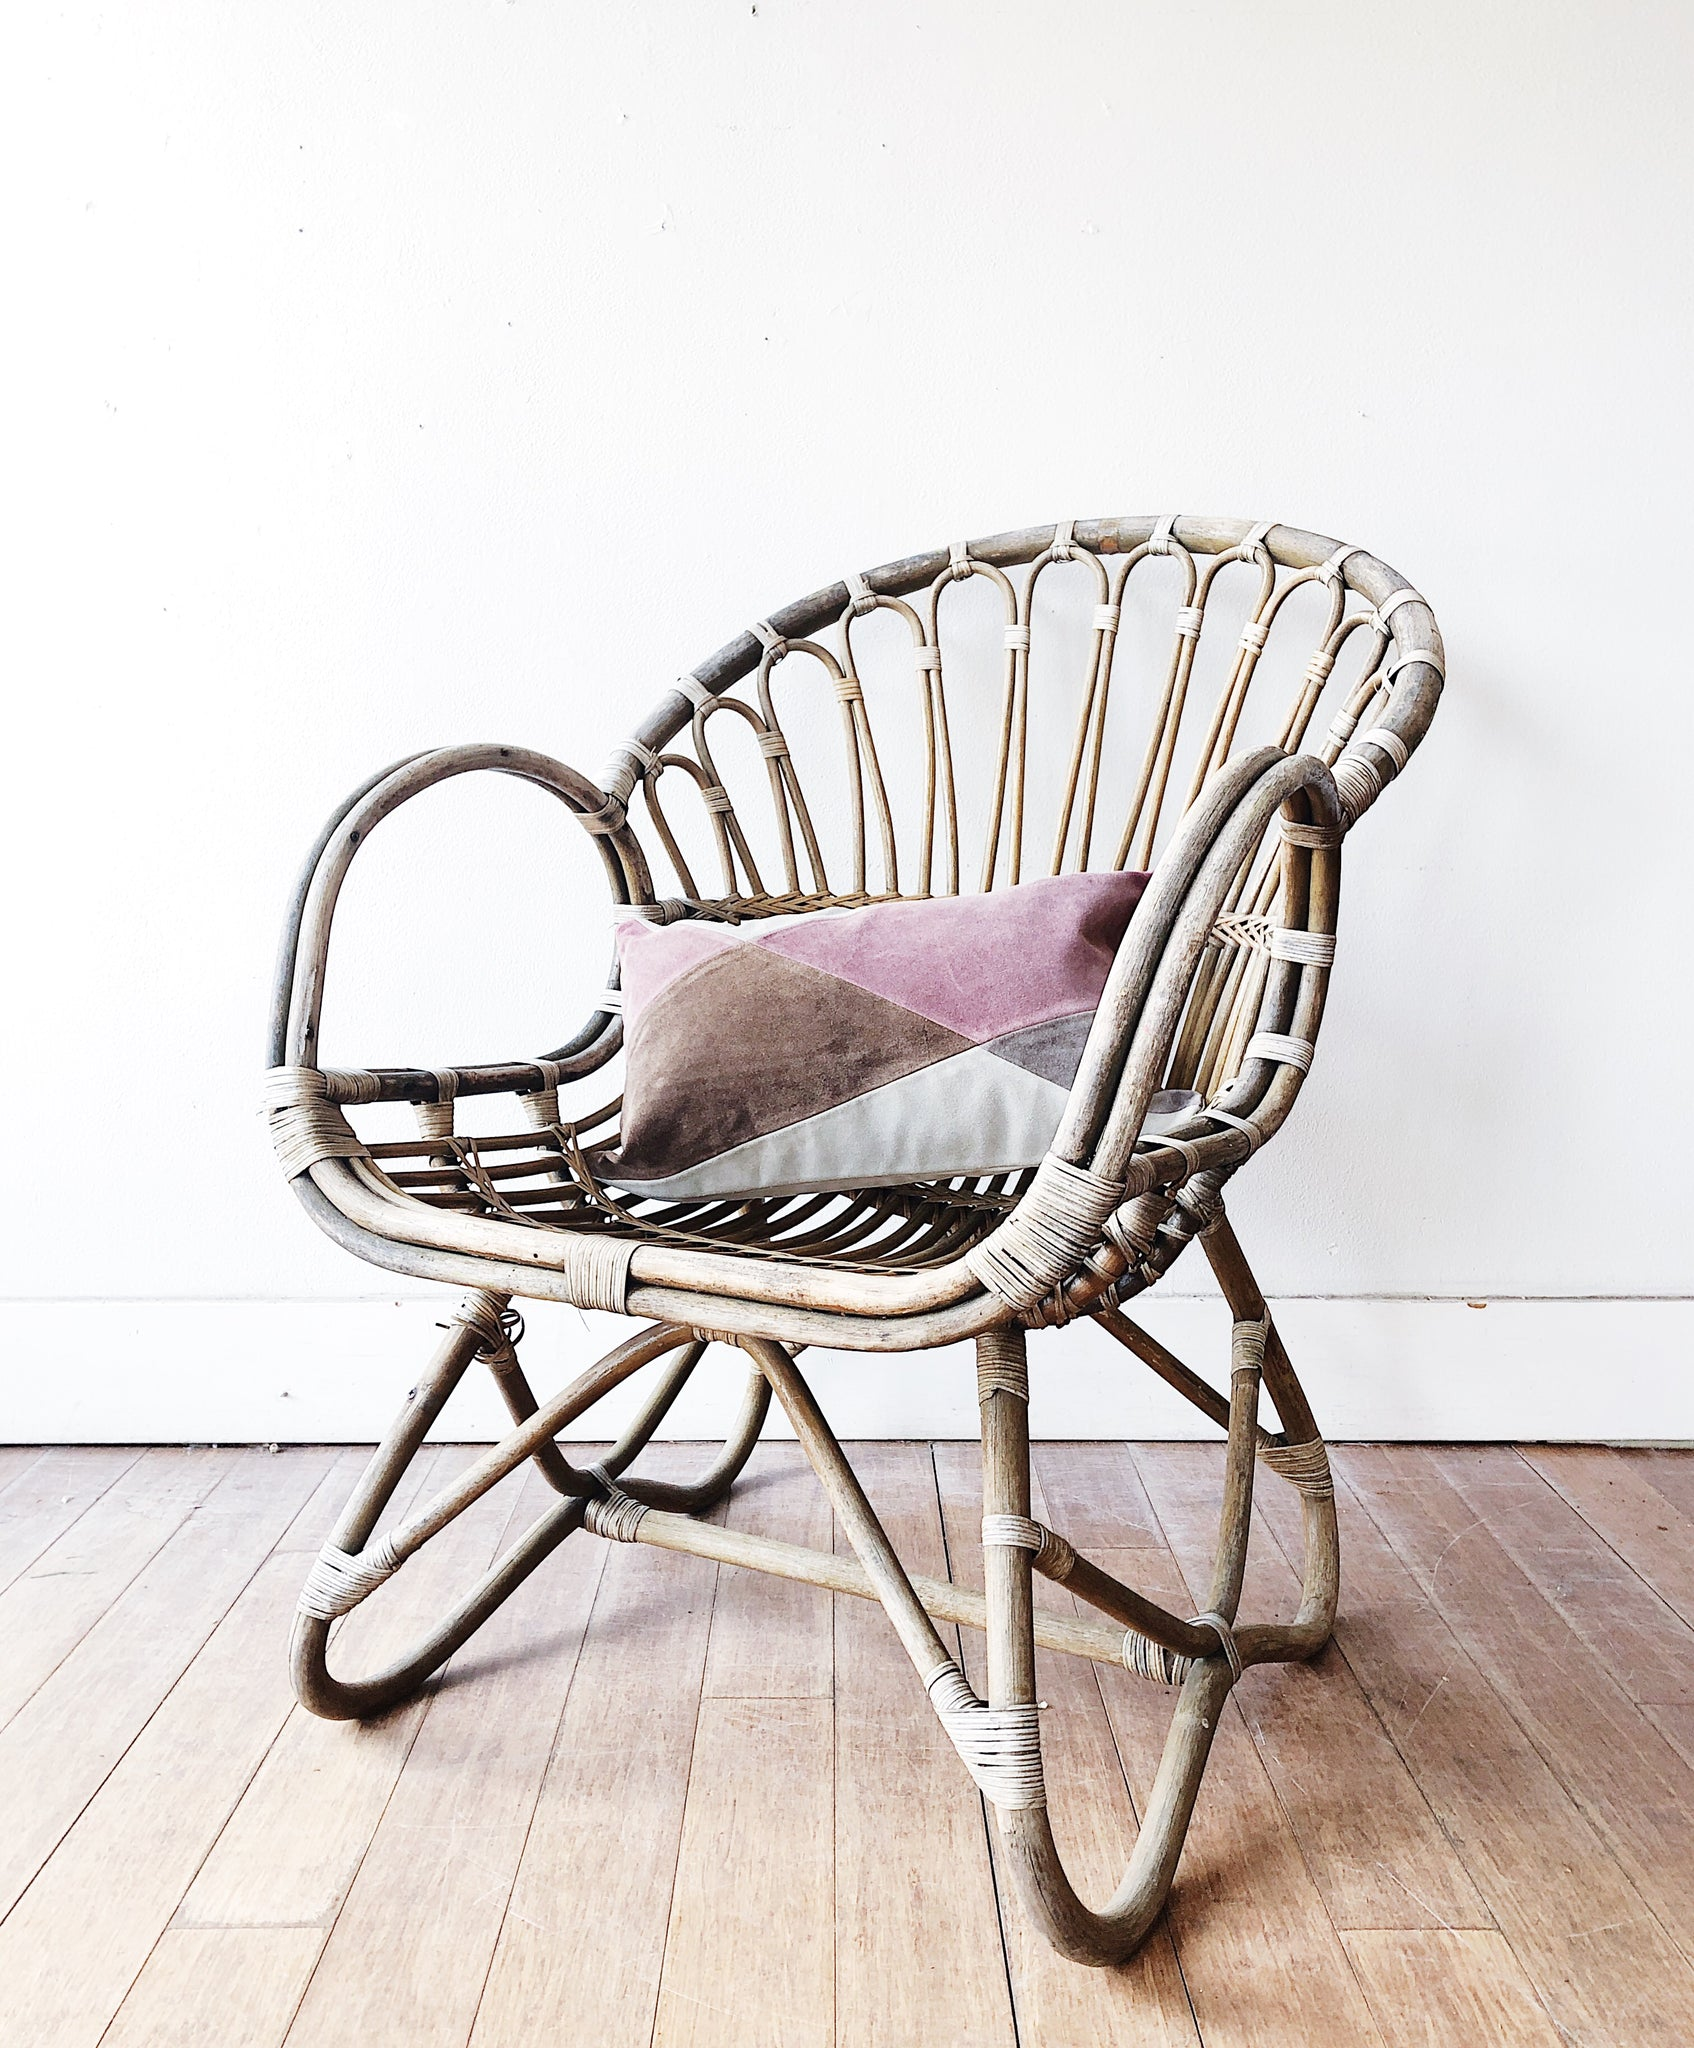 Vintage Franco Albini Rattan Chair and Suede Cushion